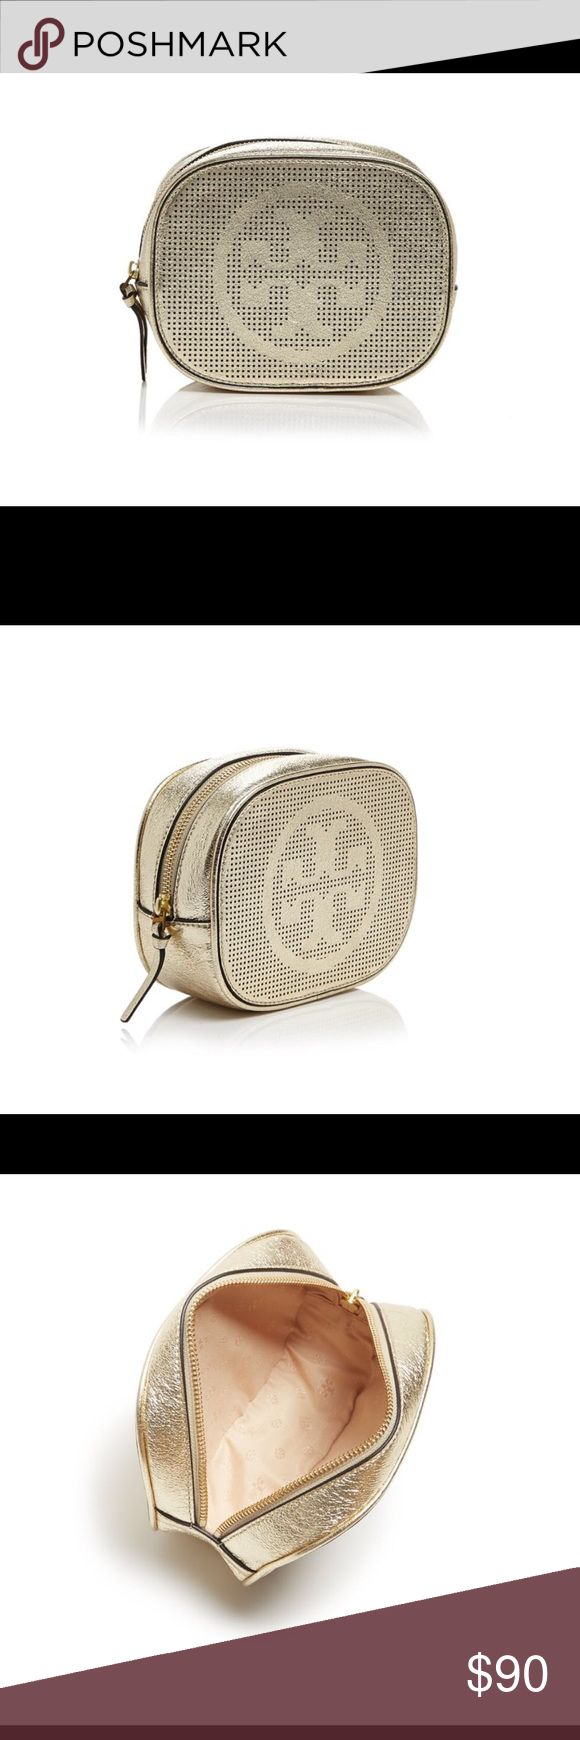 Tory Burch logo metallic leather cosmetic case % authentic Tory Burch logo perforated metallic leather cosmetic case spark gold NWT zip top closure logo lining never been used Tory Burch Bags Cosmetic Bags & Cases